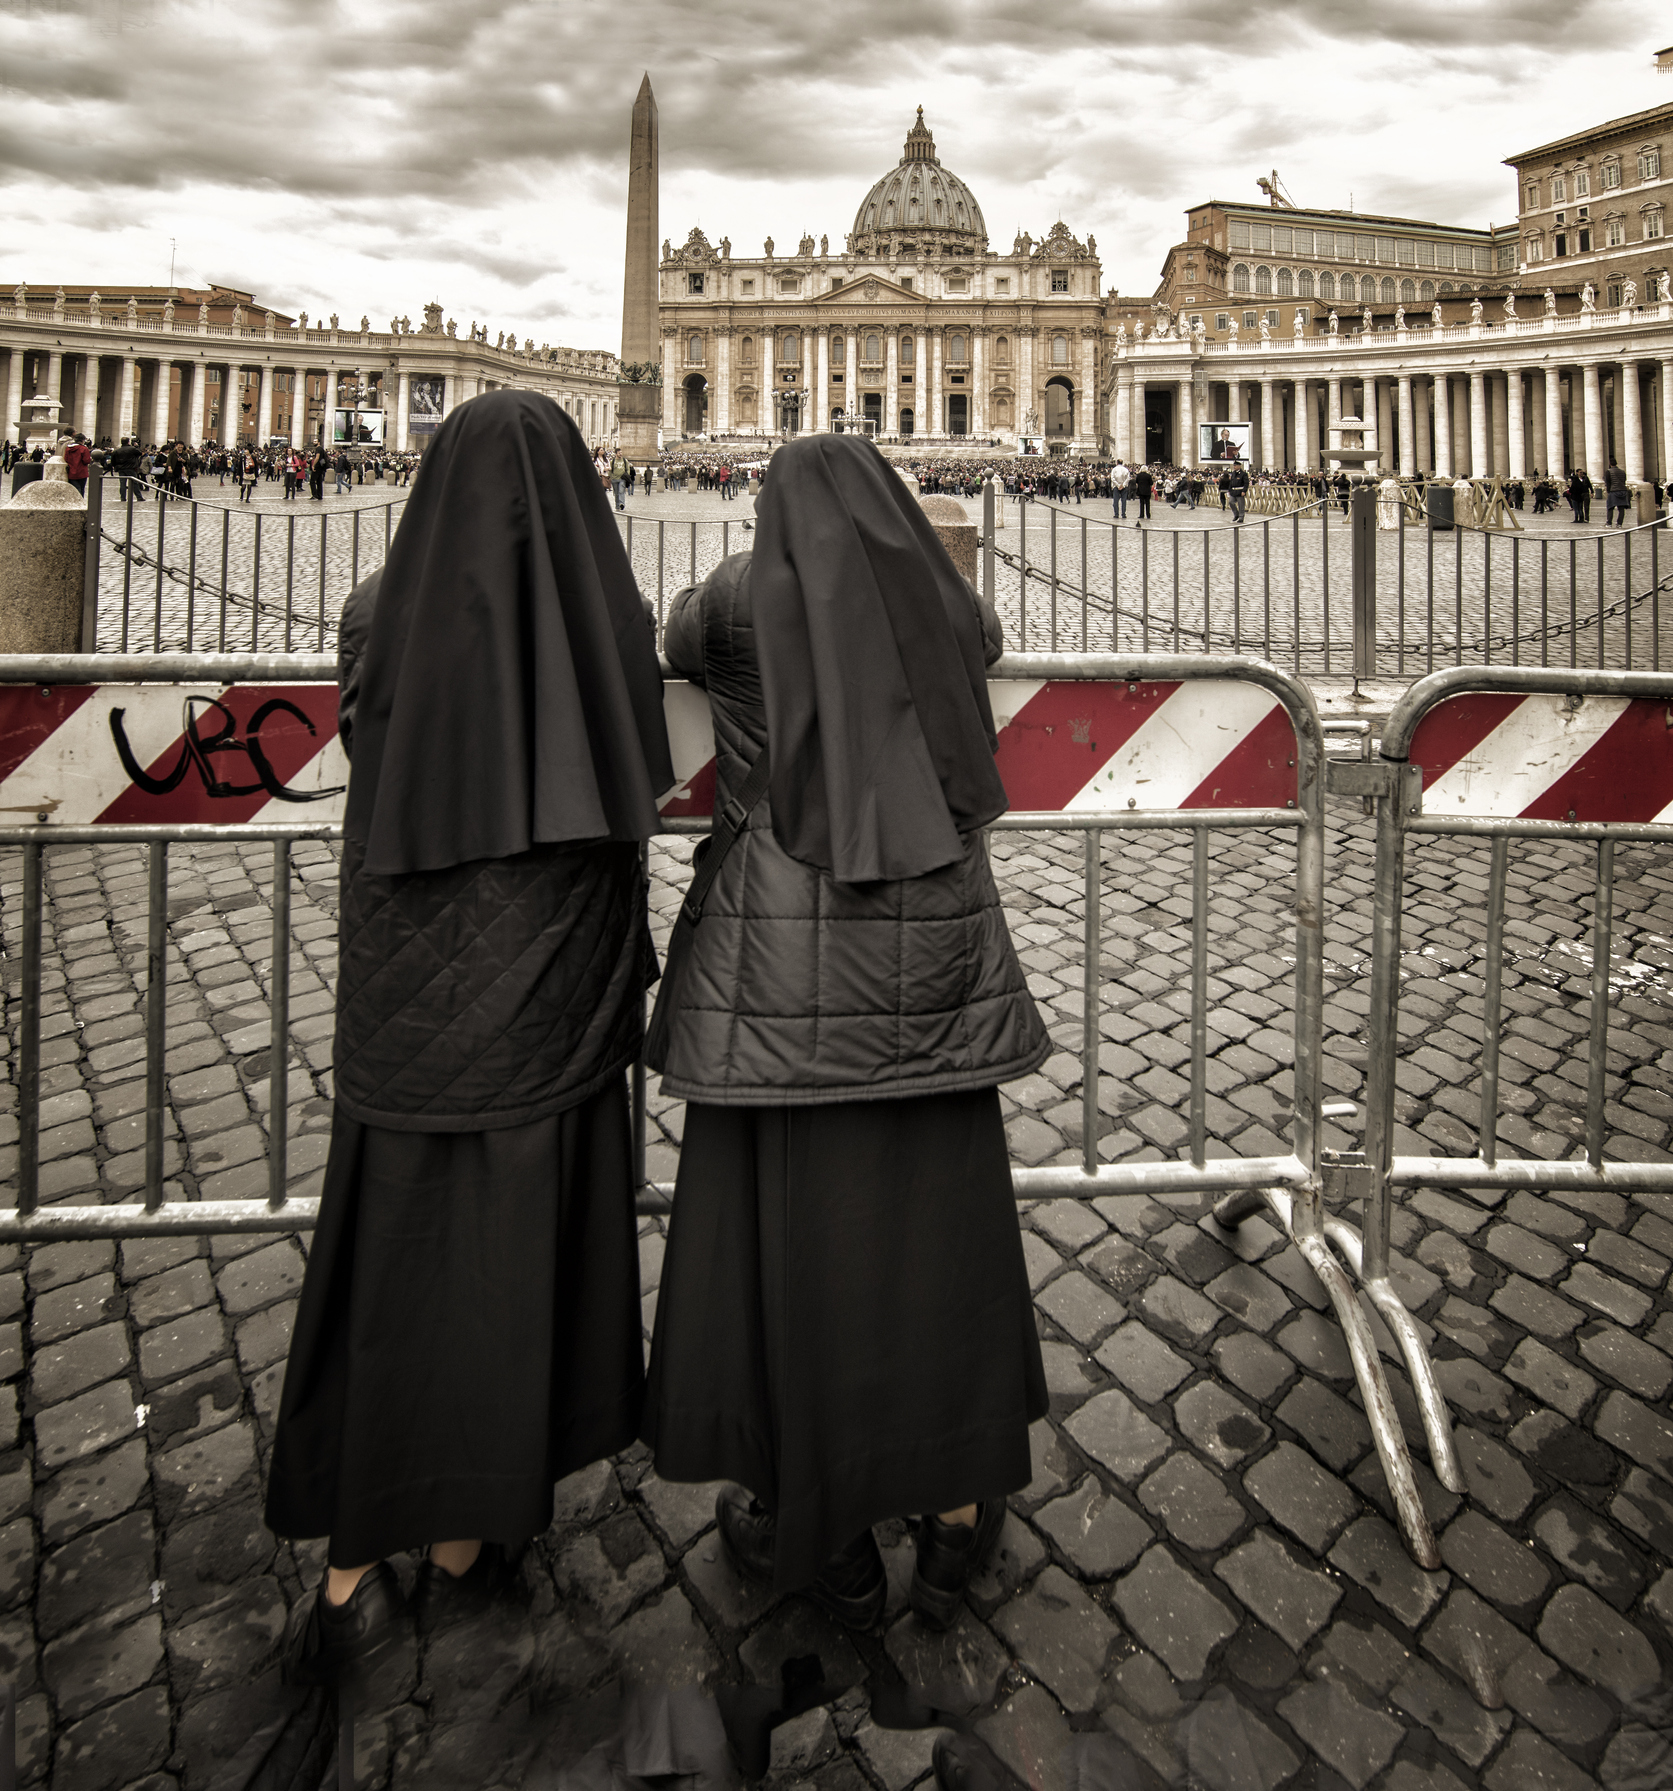 Two Nuns Stare at St. Peter's Basilica